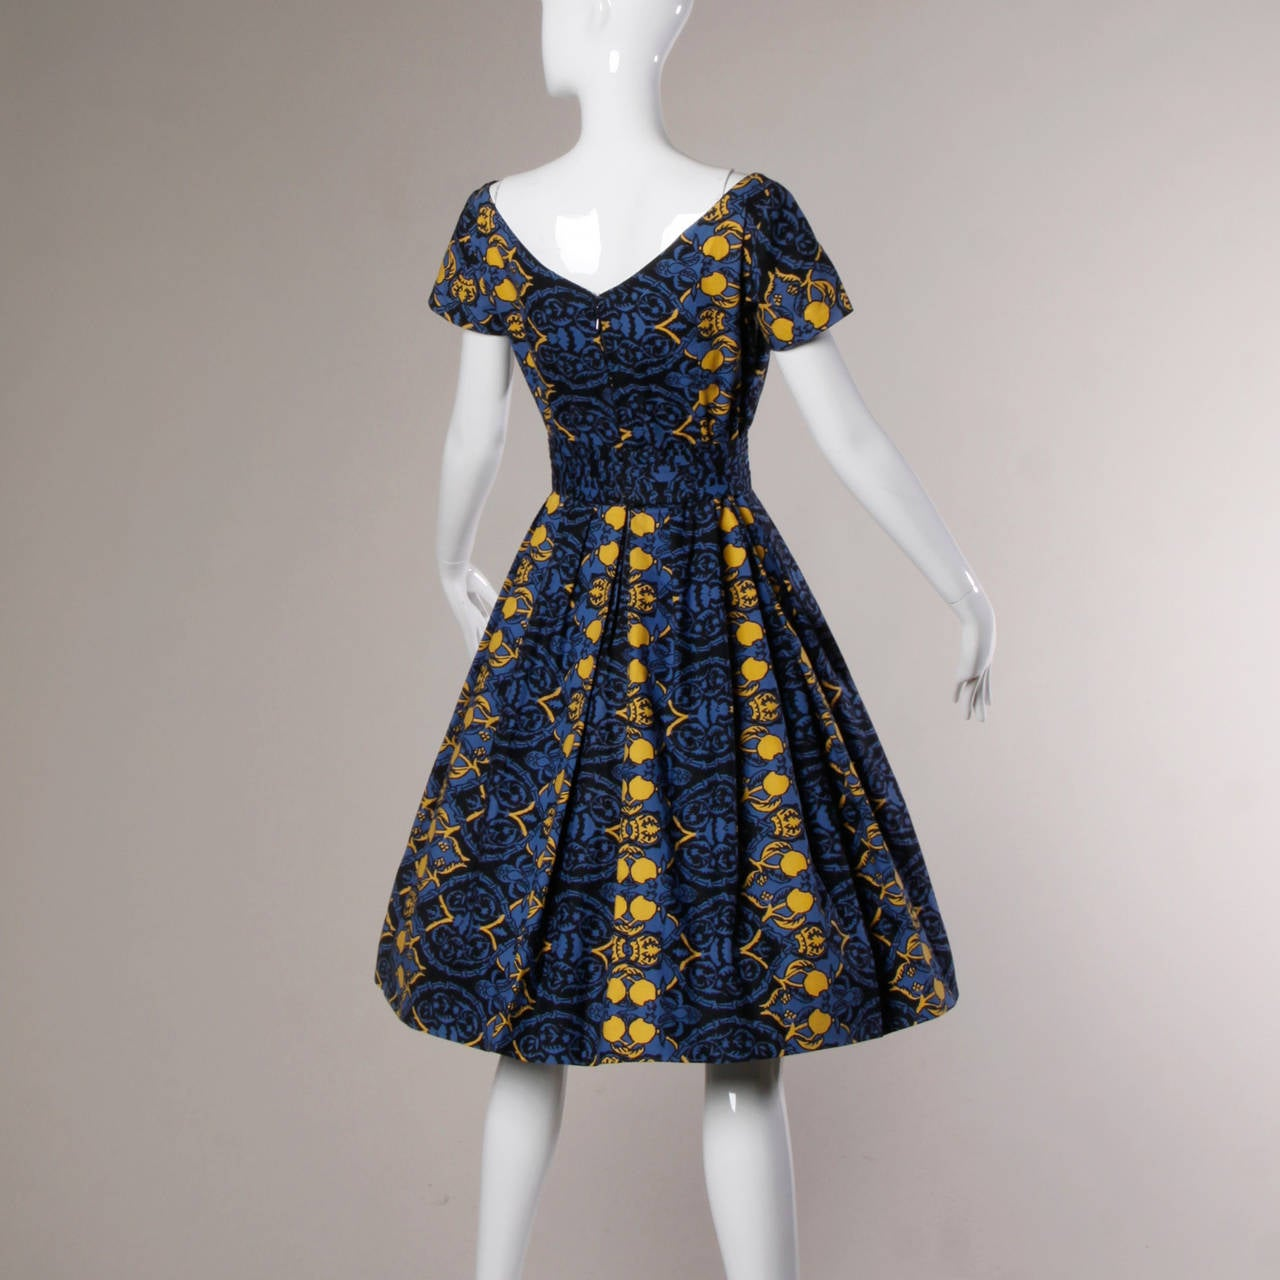 1950s Vintage French Custom Provincial Printed Cotton Dress 3